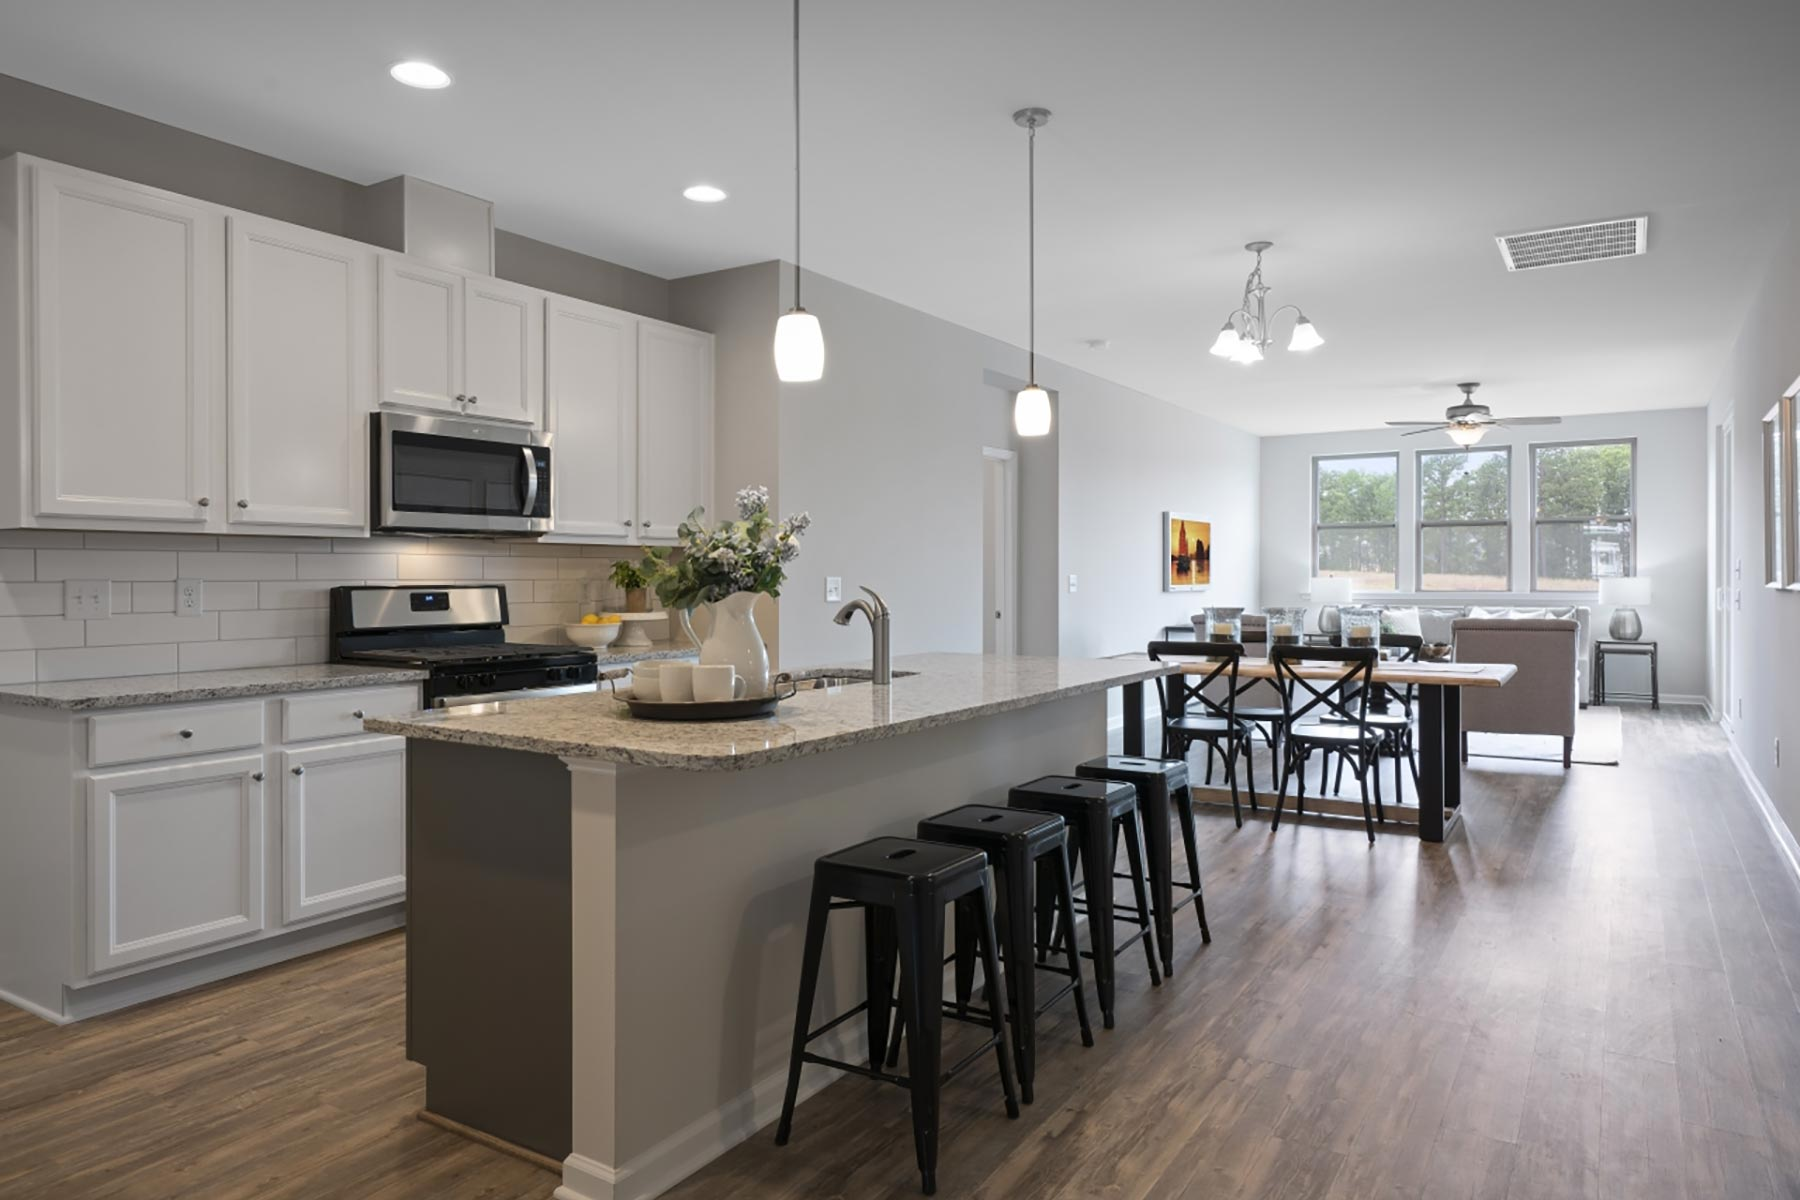 Evelyn Plan Kitchen at Wendell Falls in Wendell North Carolina by Mattamy Homes